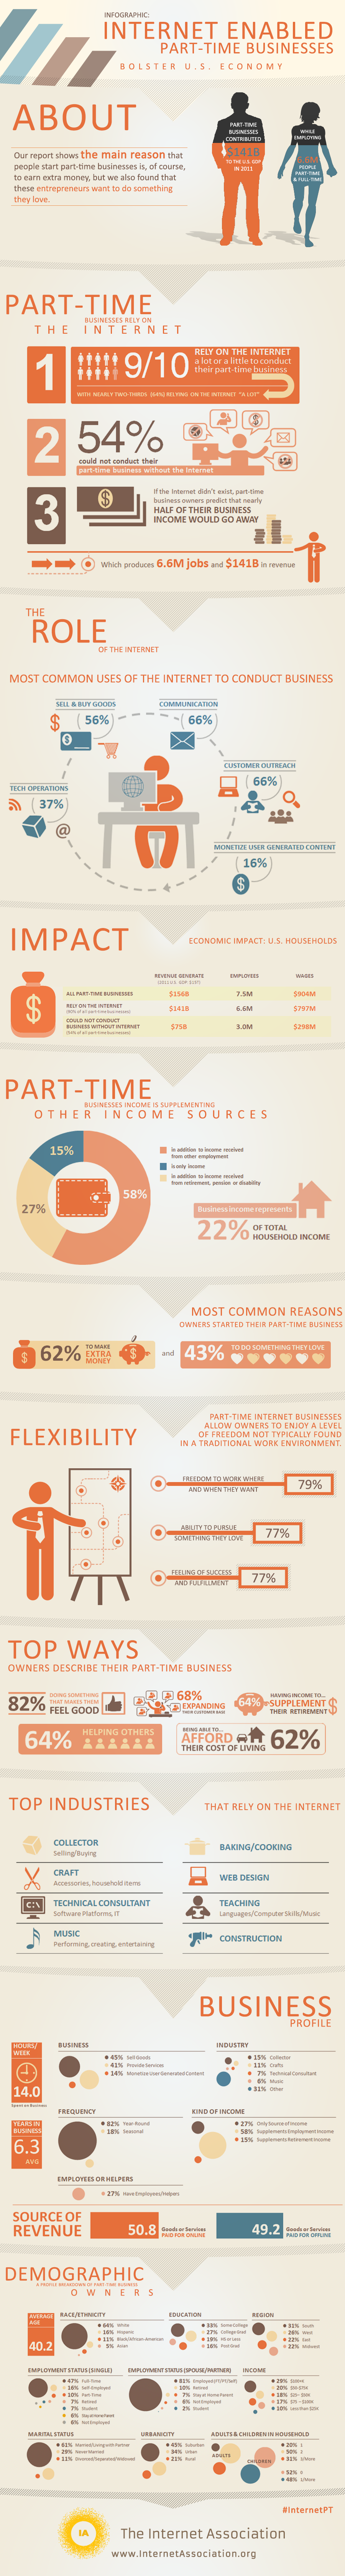 INFOGRAPHIC: Internet Enabled Part-Time Businesses